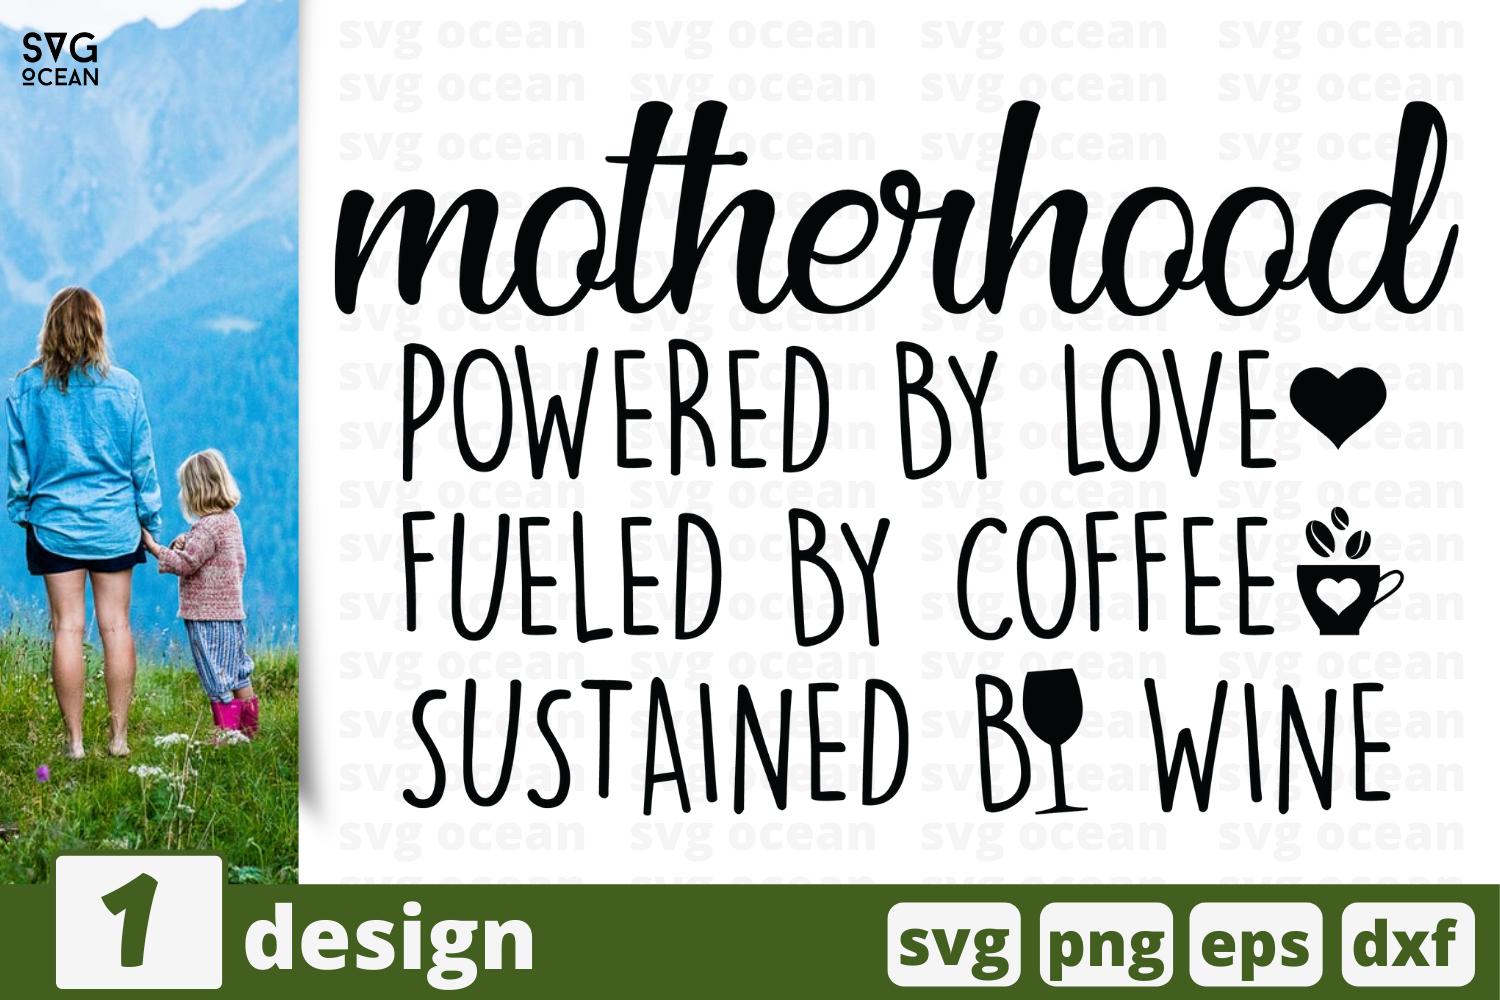 Download Free Motherhood Quote Graphic By Svgocean Creative Fabrica for Cricut Explore, Silhouette and other cutting machines.